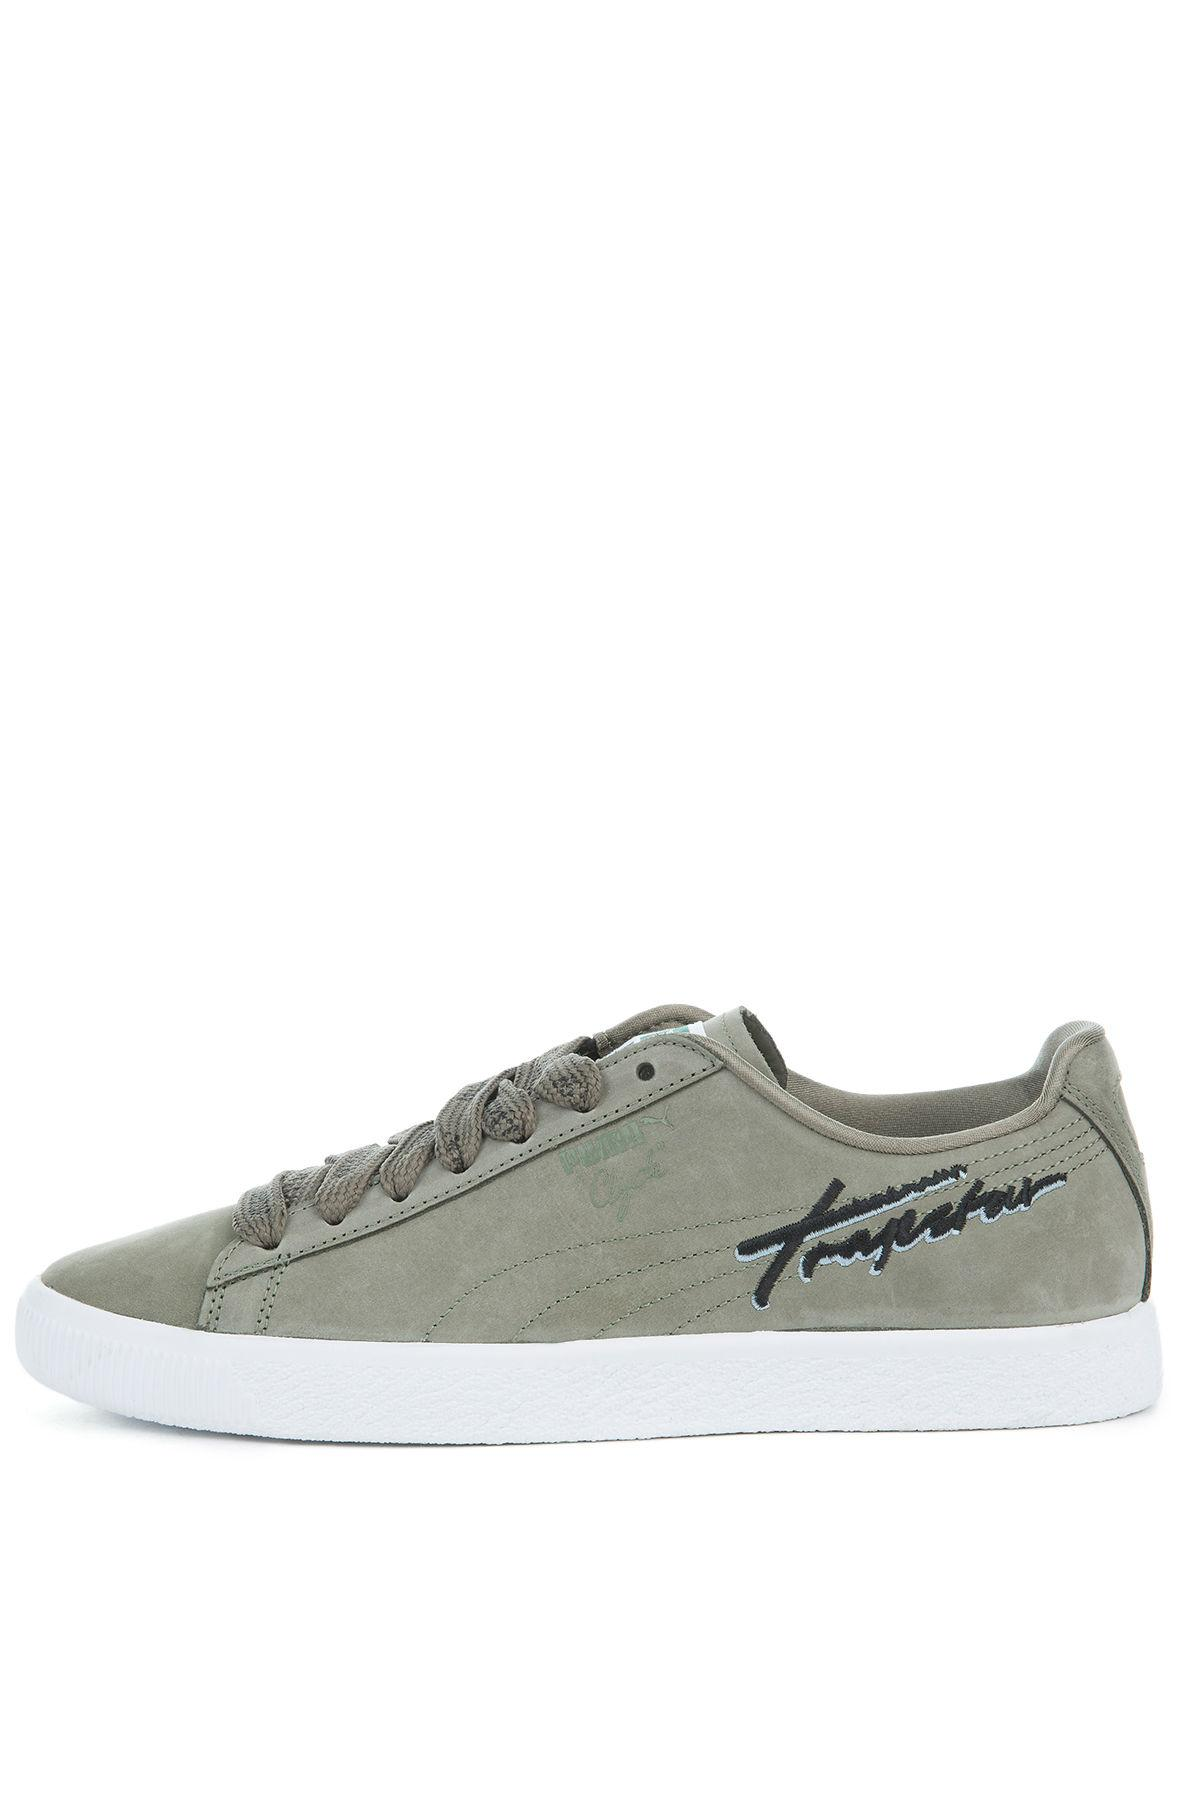 5fb2bbf6813e Lyst - Puma The X Trapstar Clyde Sneaker In Burnt Olive in Green for Men